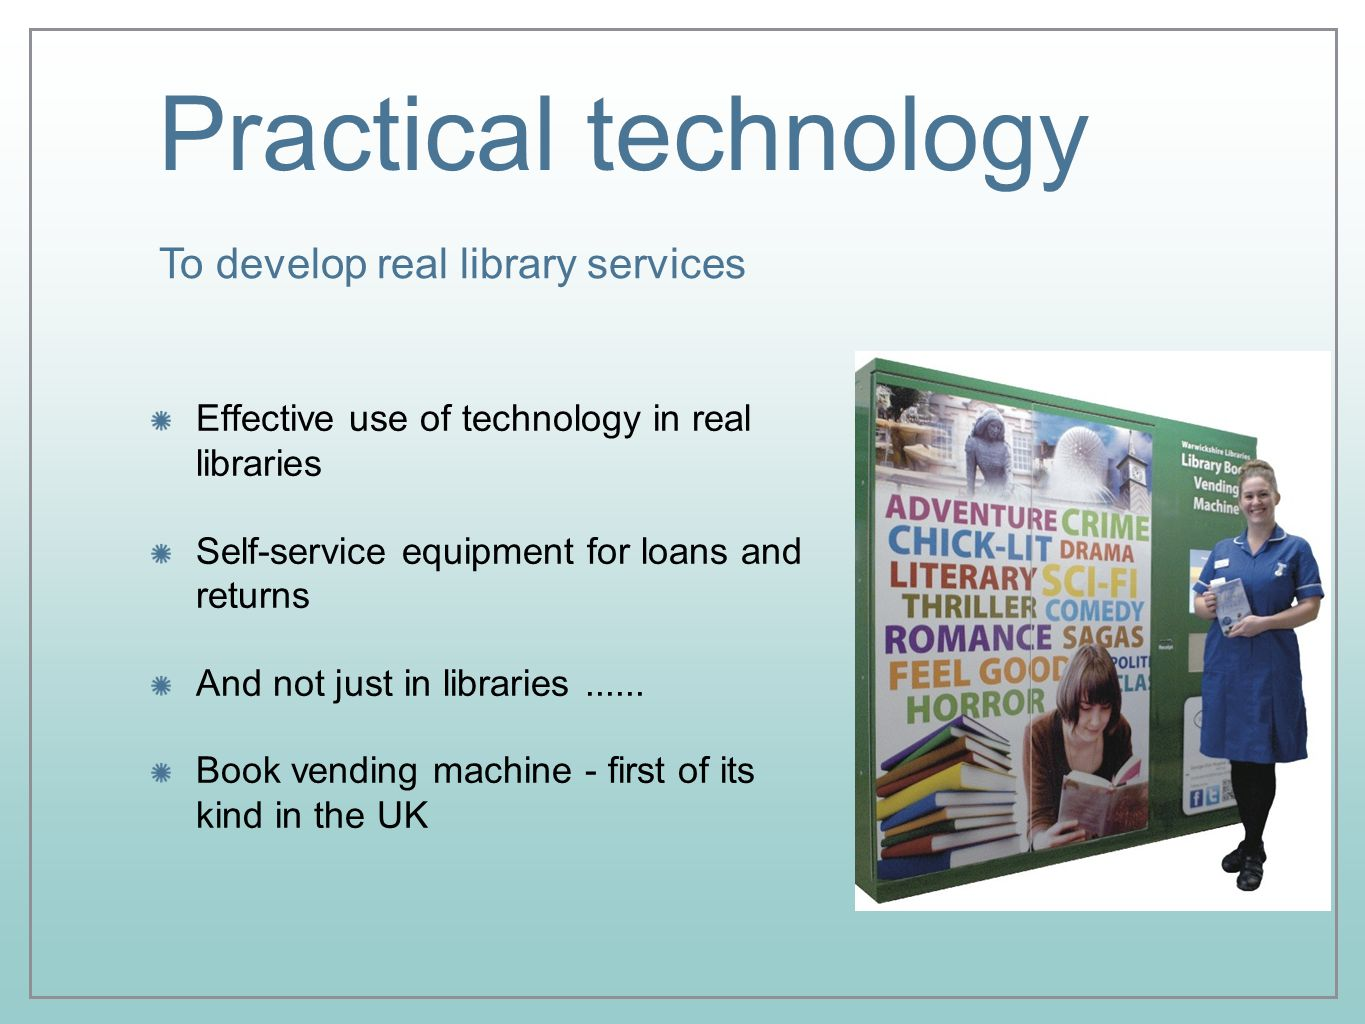 Practical technology Effective use of technology in real libraries Self-service equipment for loans and returns And not just in libraries......